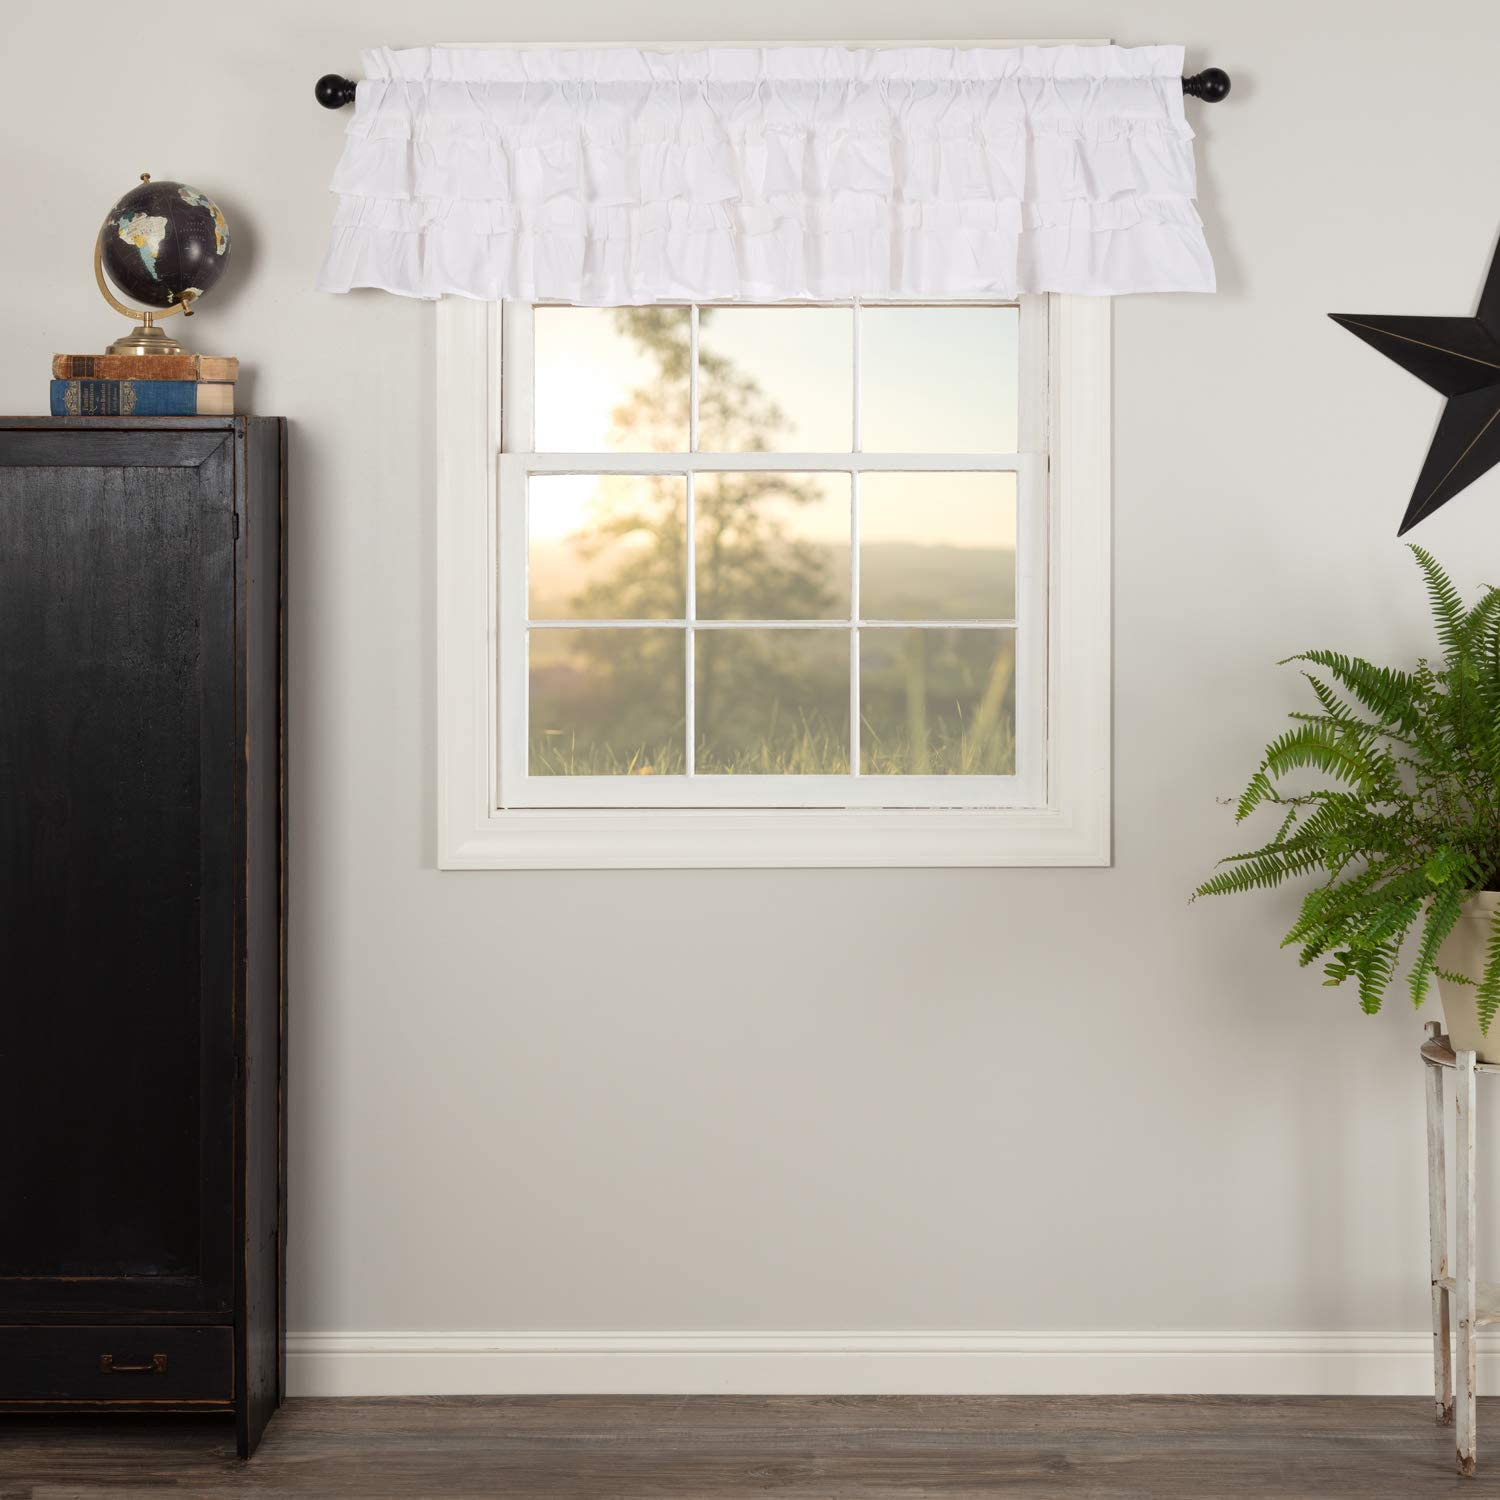 VHC Brands Muslin Ruffled 16x72 Bleached Valance White Max 64% OFF Max 82% OFF